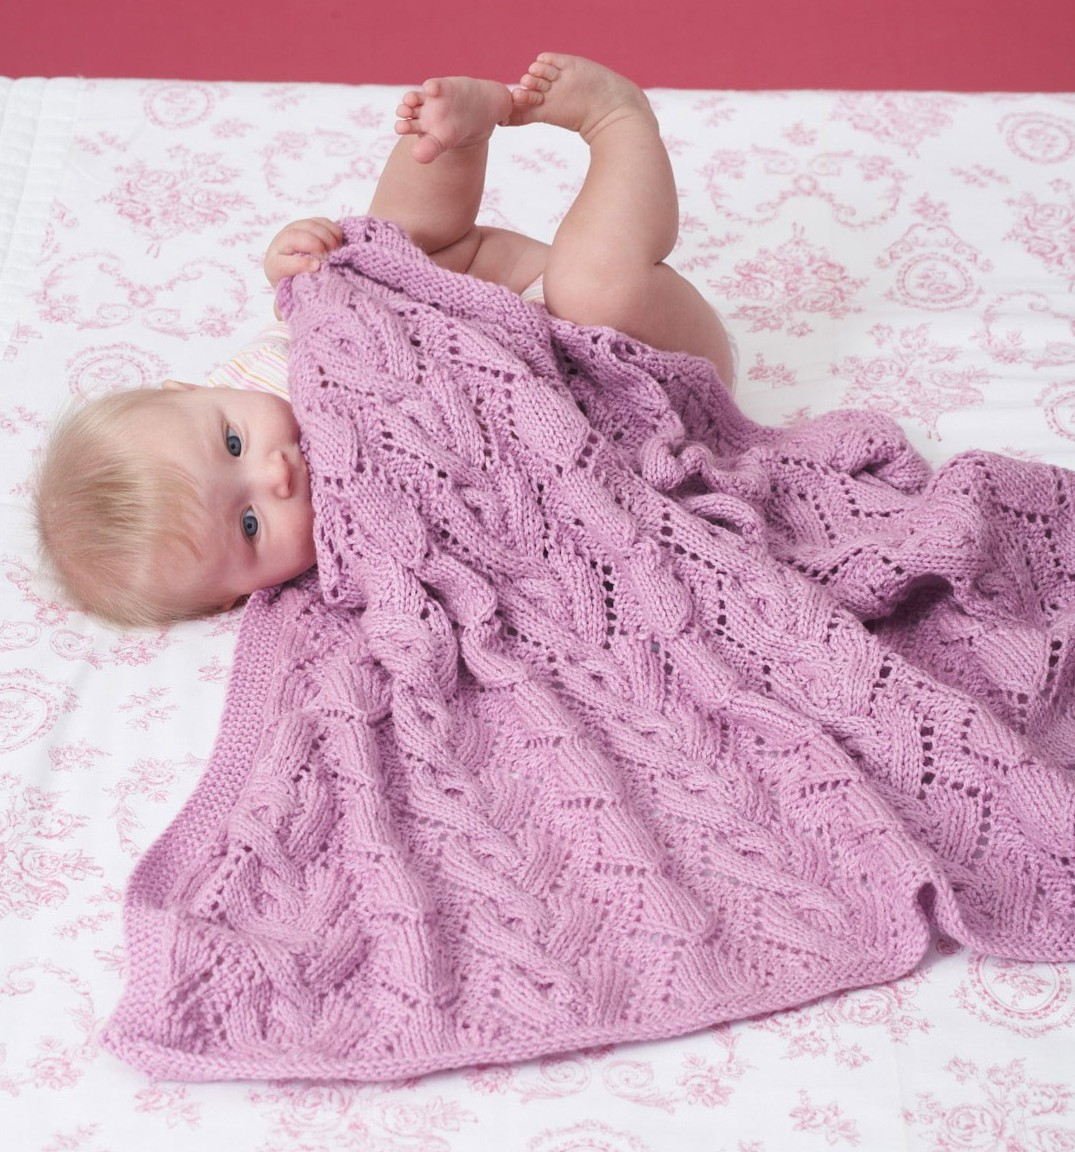 15 Cable Knit Baby Blanket Patterns - The Funky Stitch